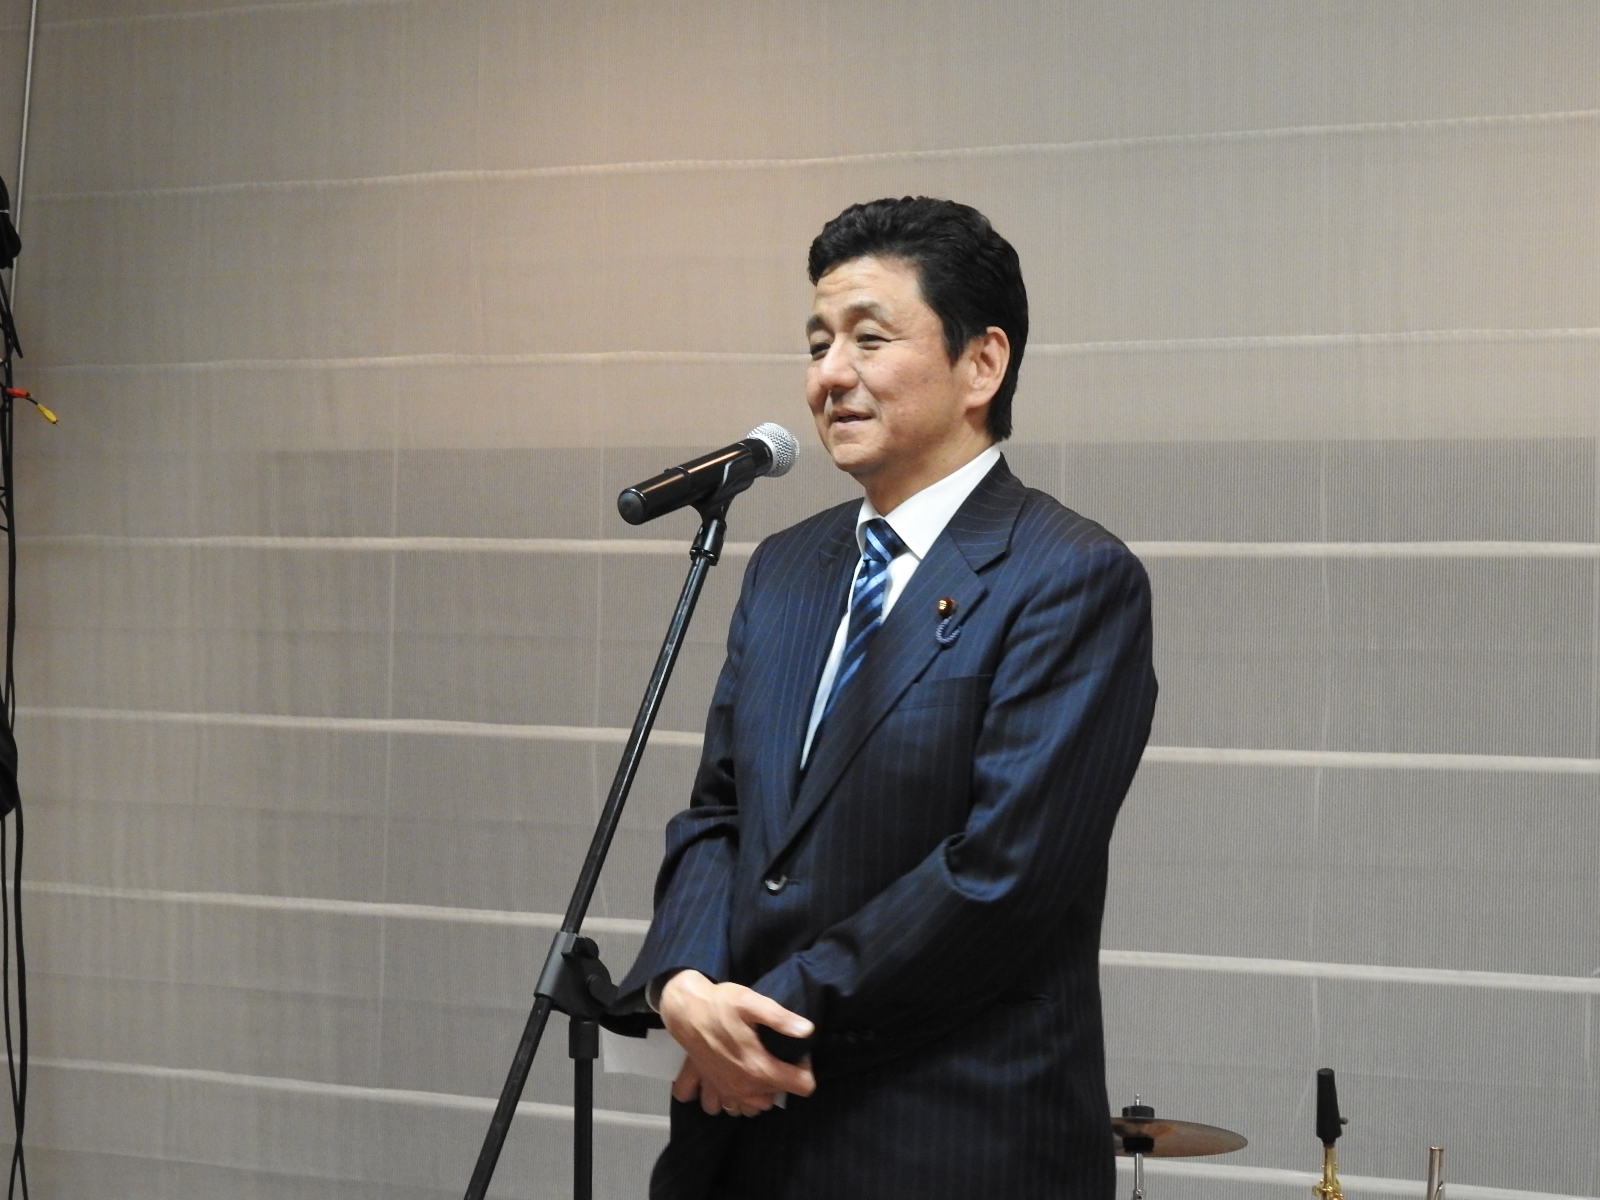 Mr. Nobuo Kishi, Parliamentary Viceminister for Foreign Affairs, during his speech before the toast